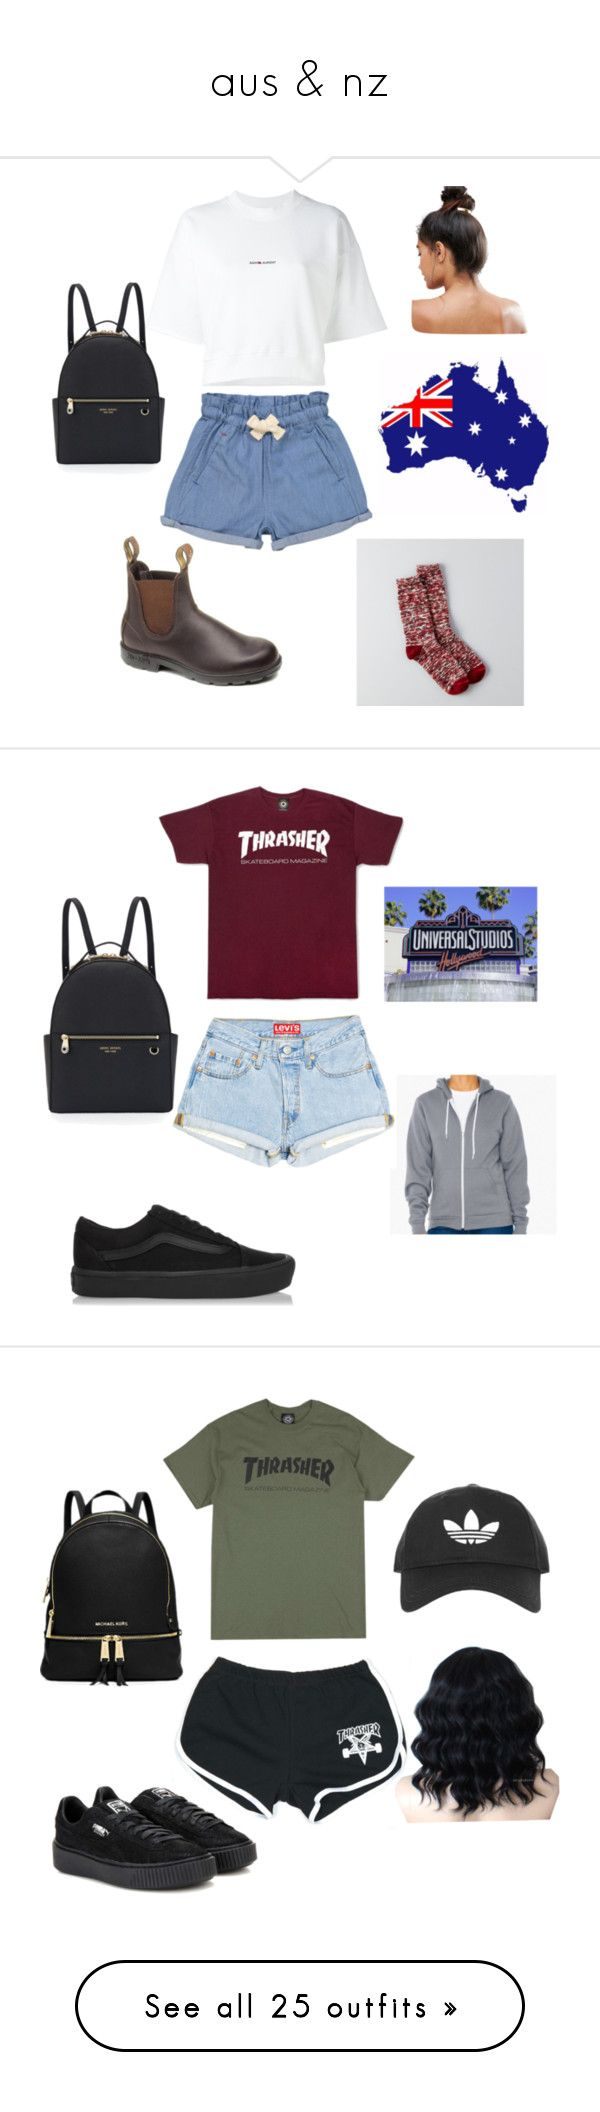 """aus & nz"" by cookiescore on Polyvore featuring American Eagle Outfitters, Tootsa MacGinty, Yves Saint Laurent, Kitsch, Henri Bendel, Vans, Michael Kors, Puma, Topshop and adidas"